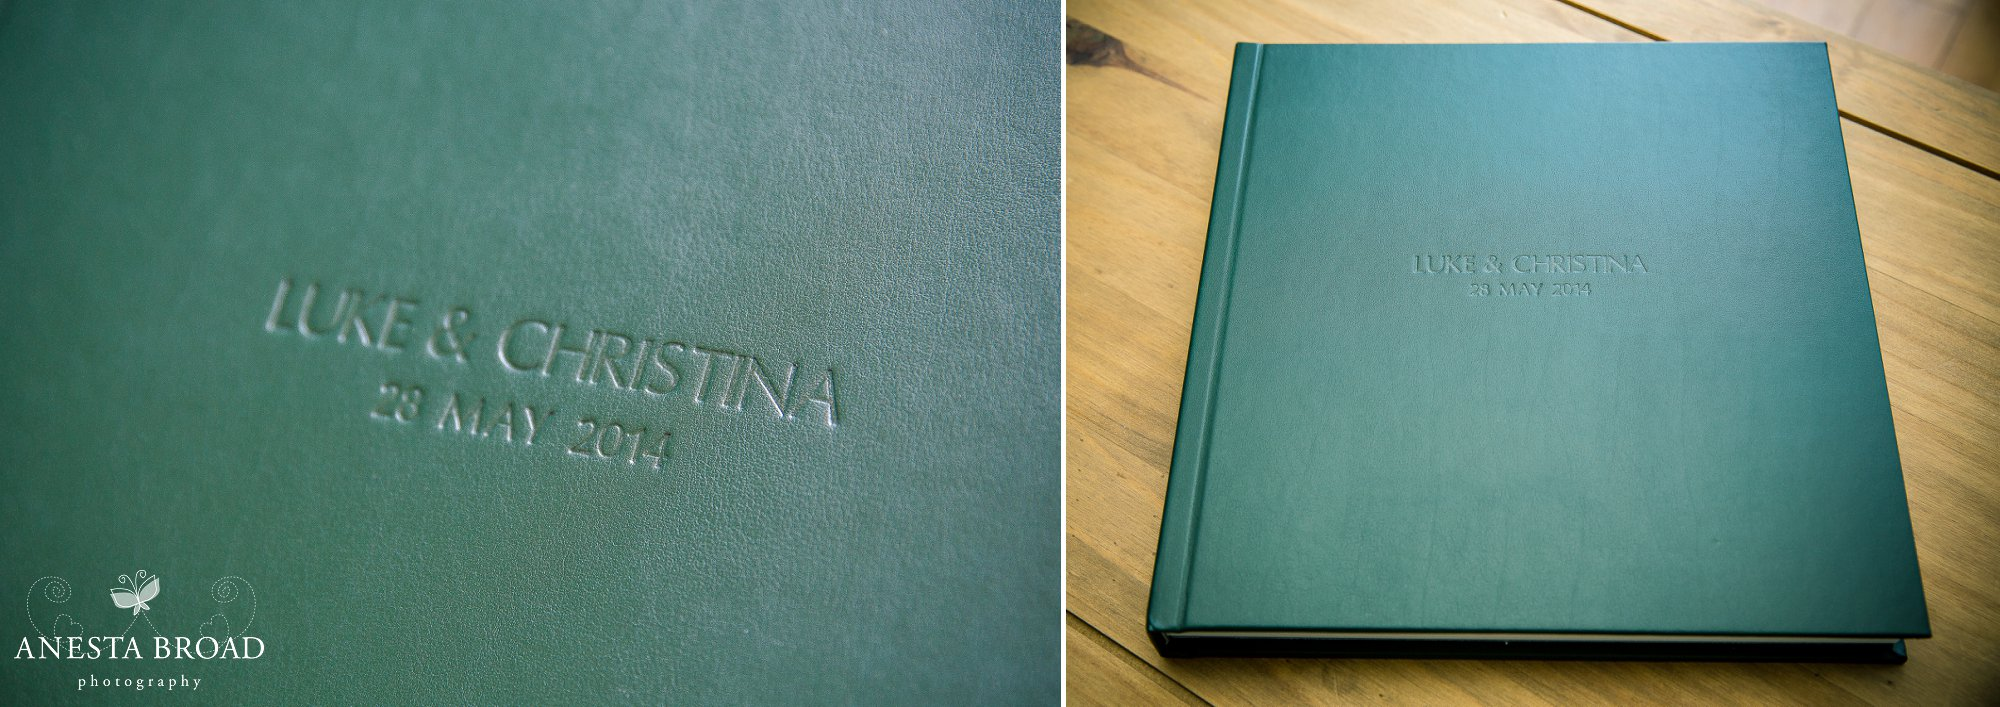 12x12 Green leather cover with names and date debossed